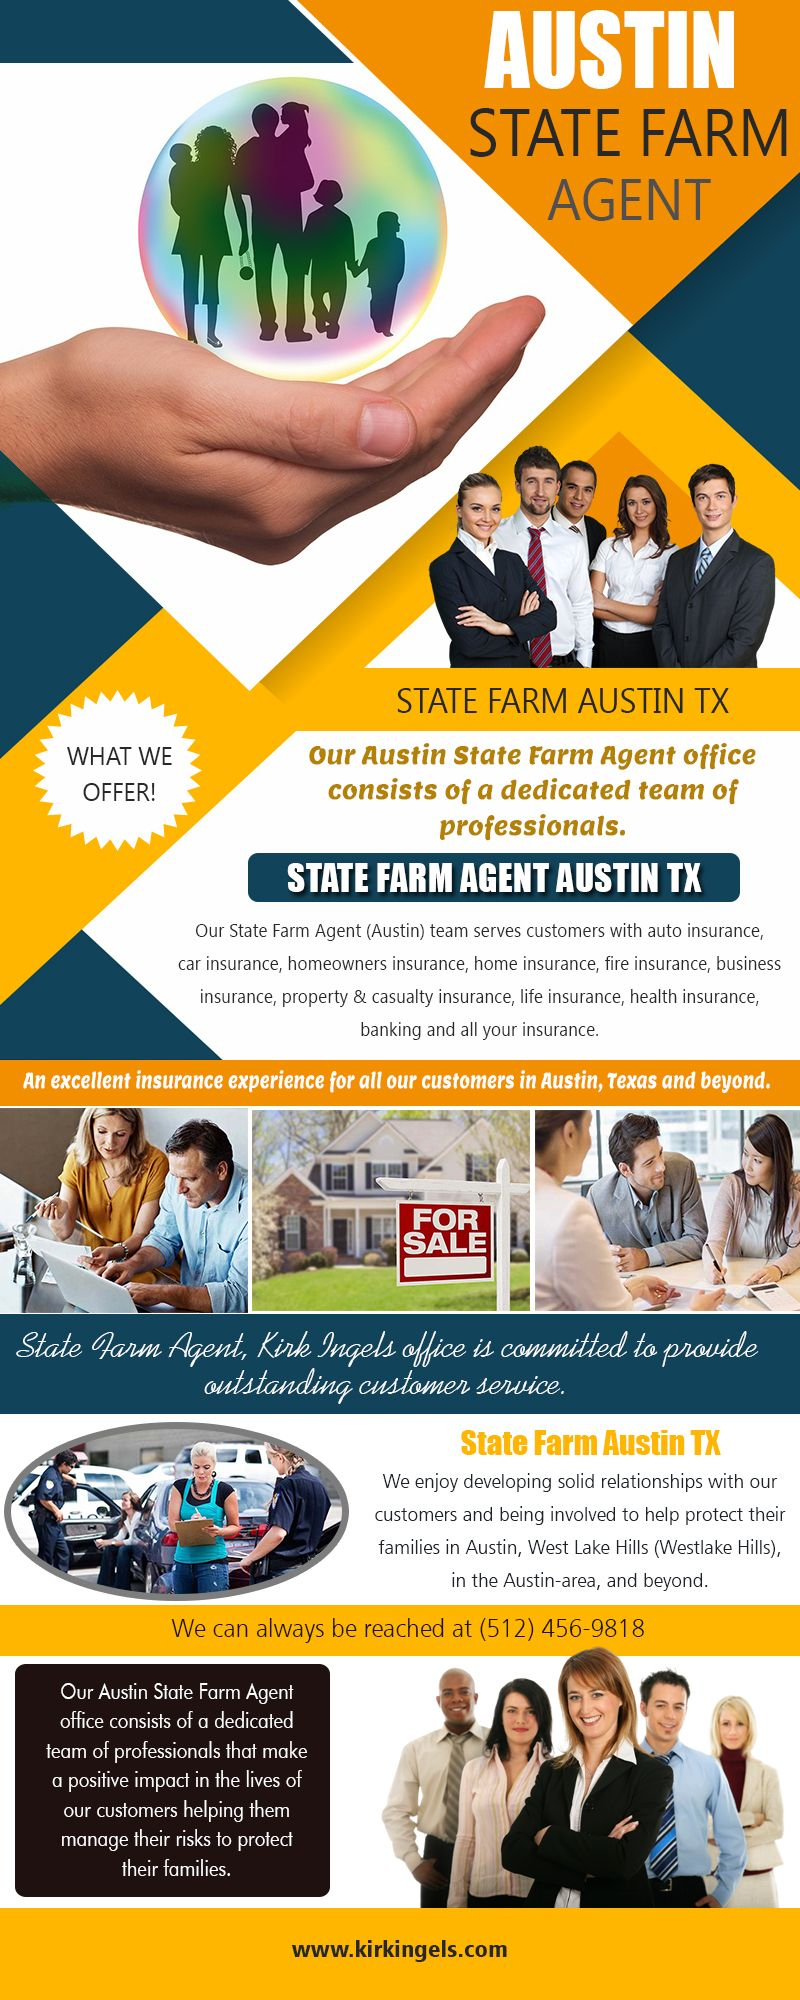 Get A Free Quote From Austin State Farm Agent At Https Www